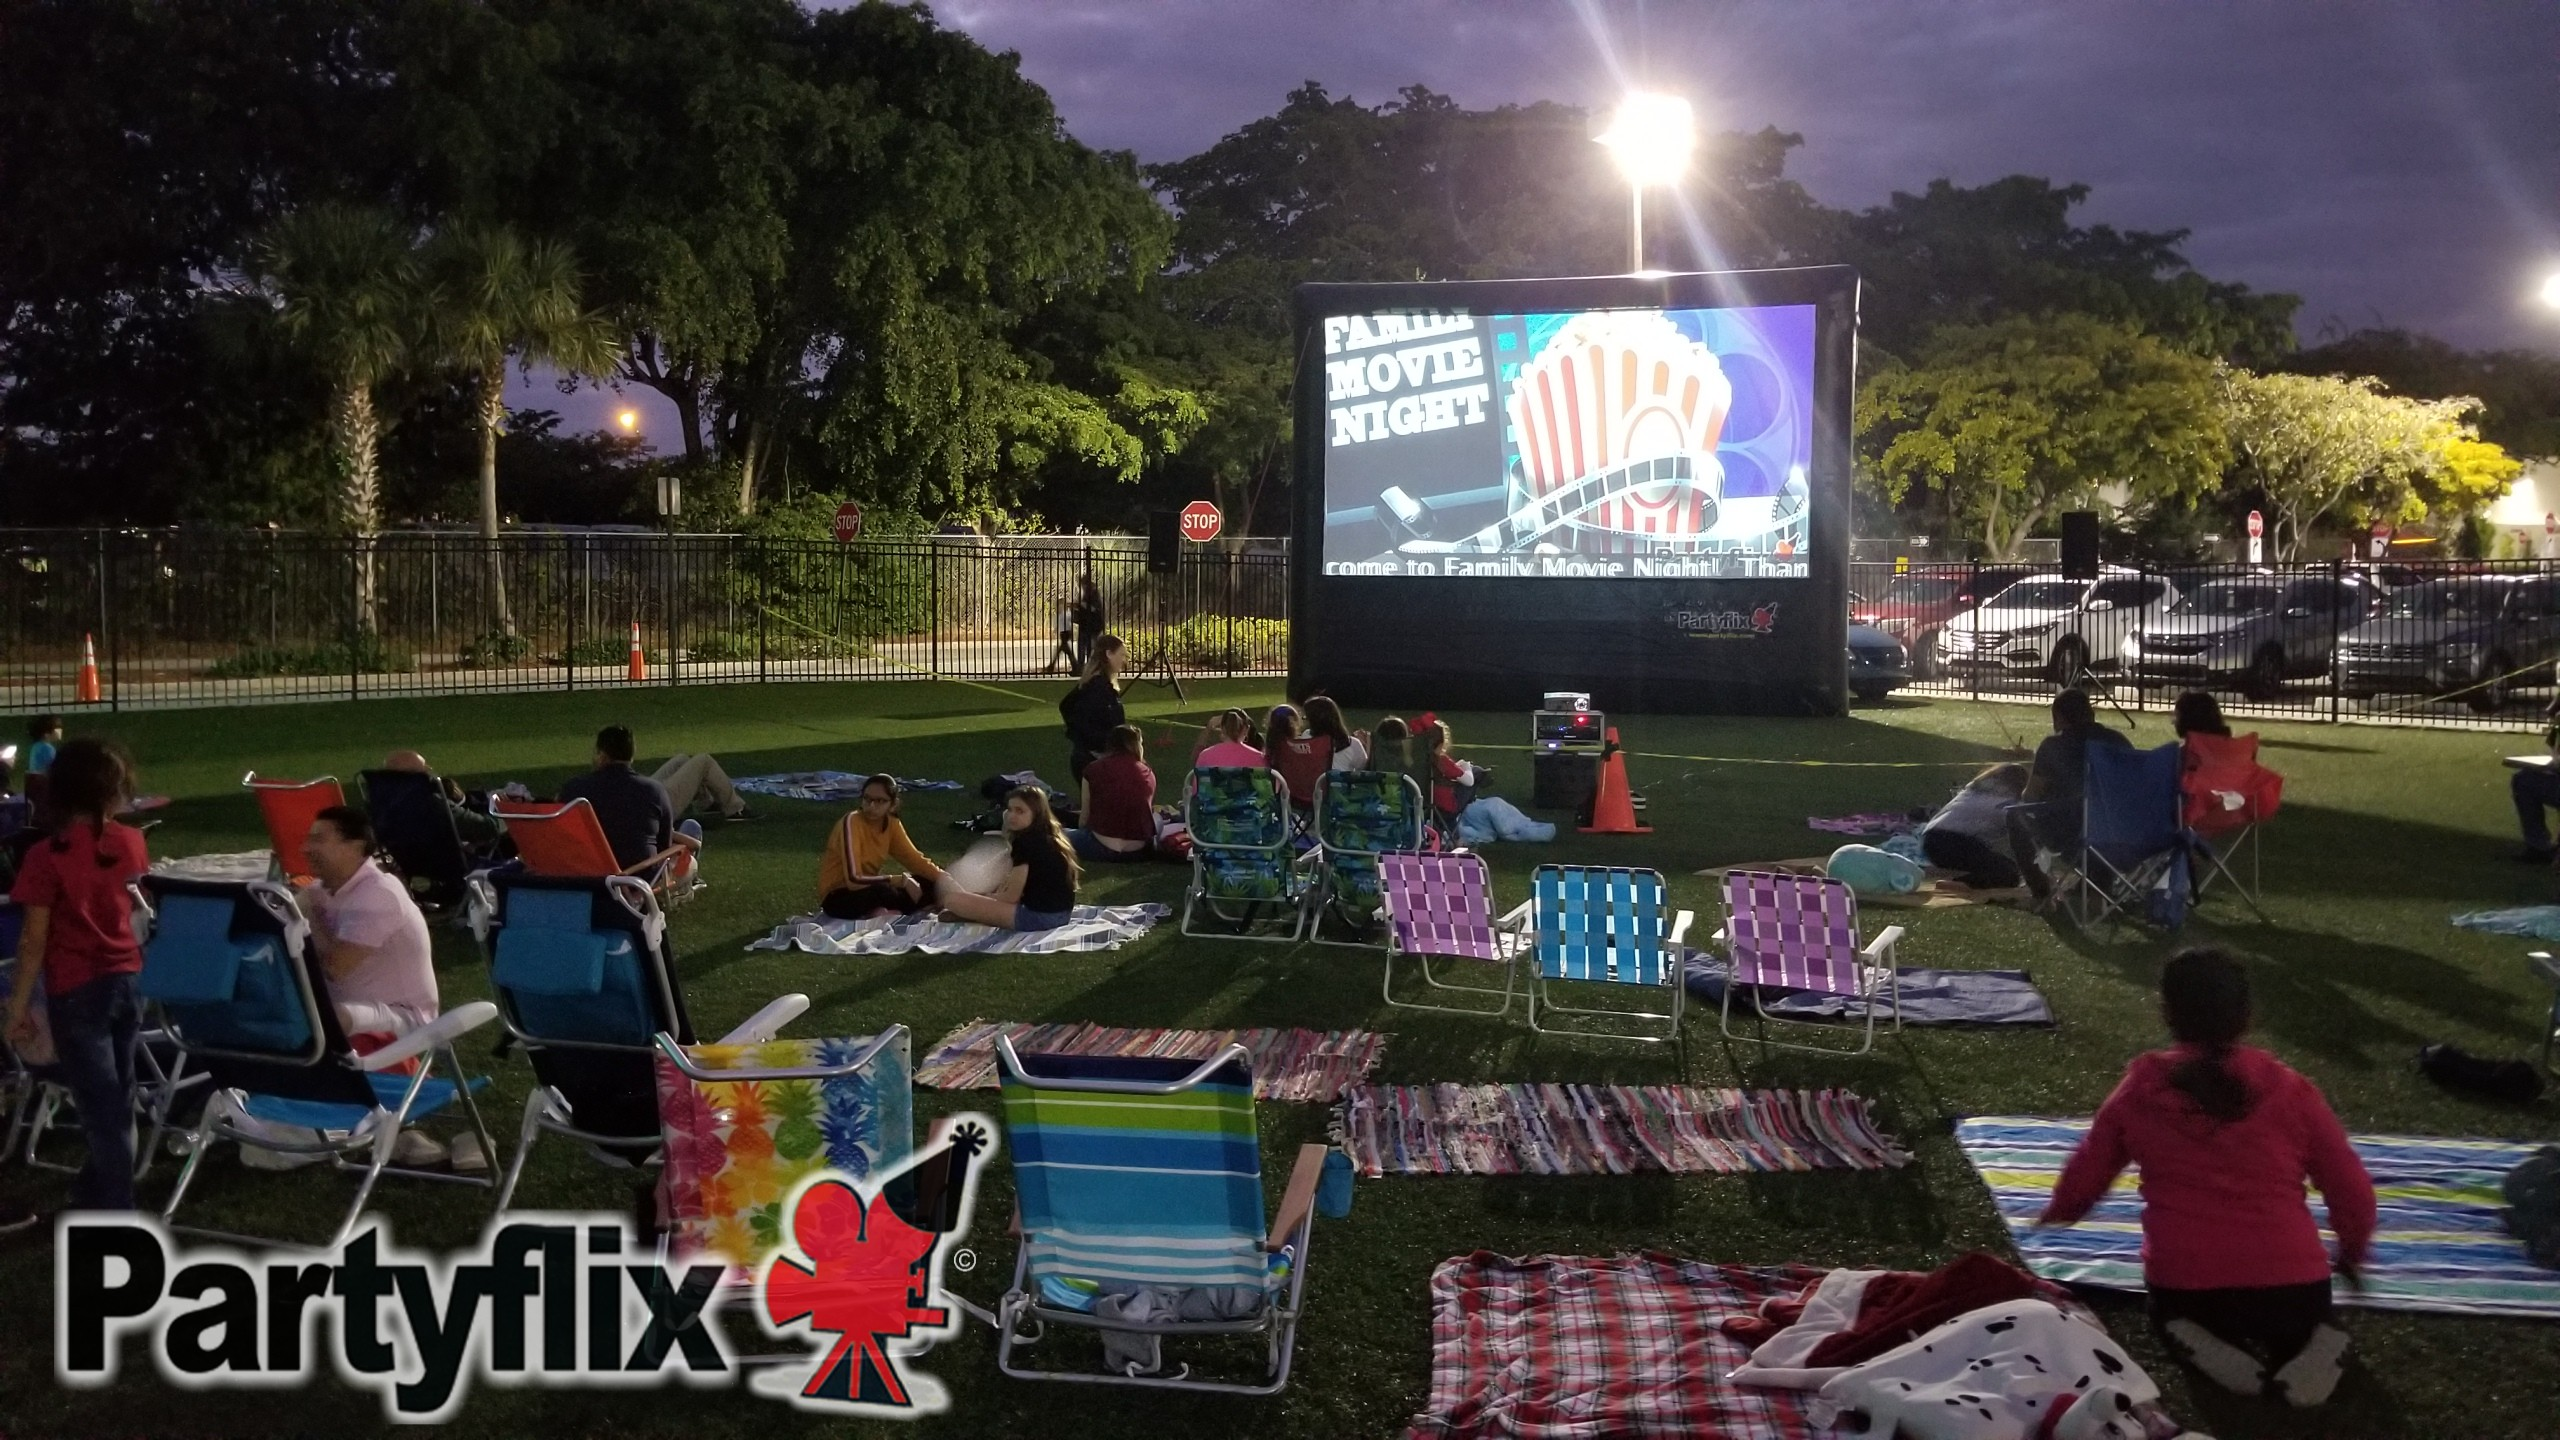 23ft Crowd Pleaser Inflatable Movie Screen (Fort Myers, FL)